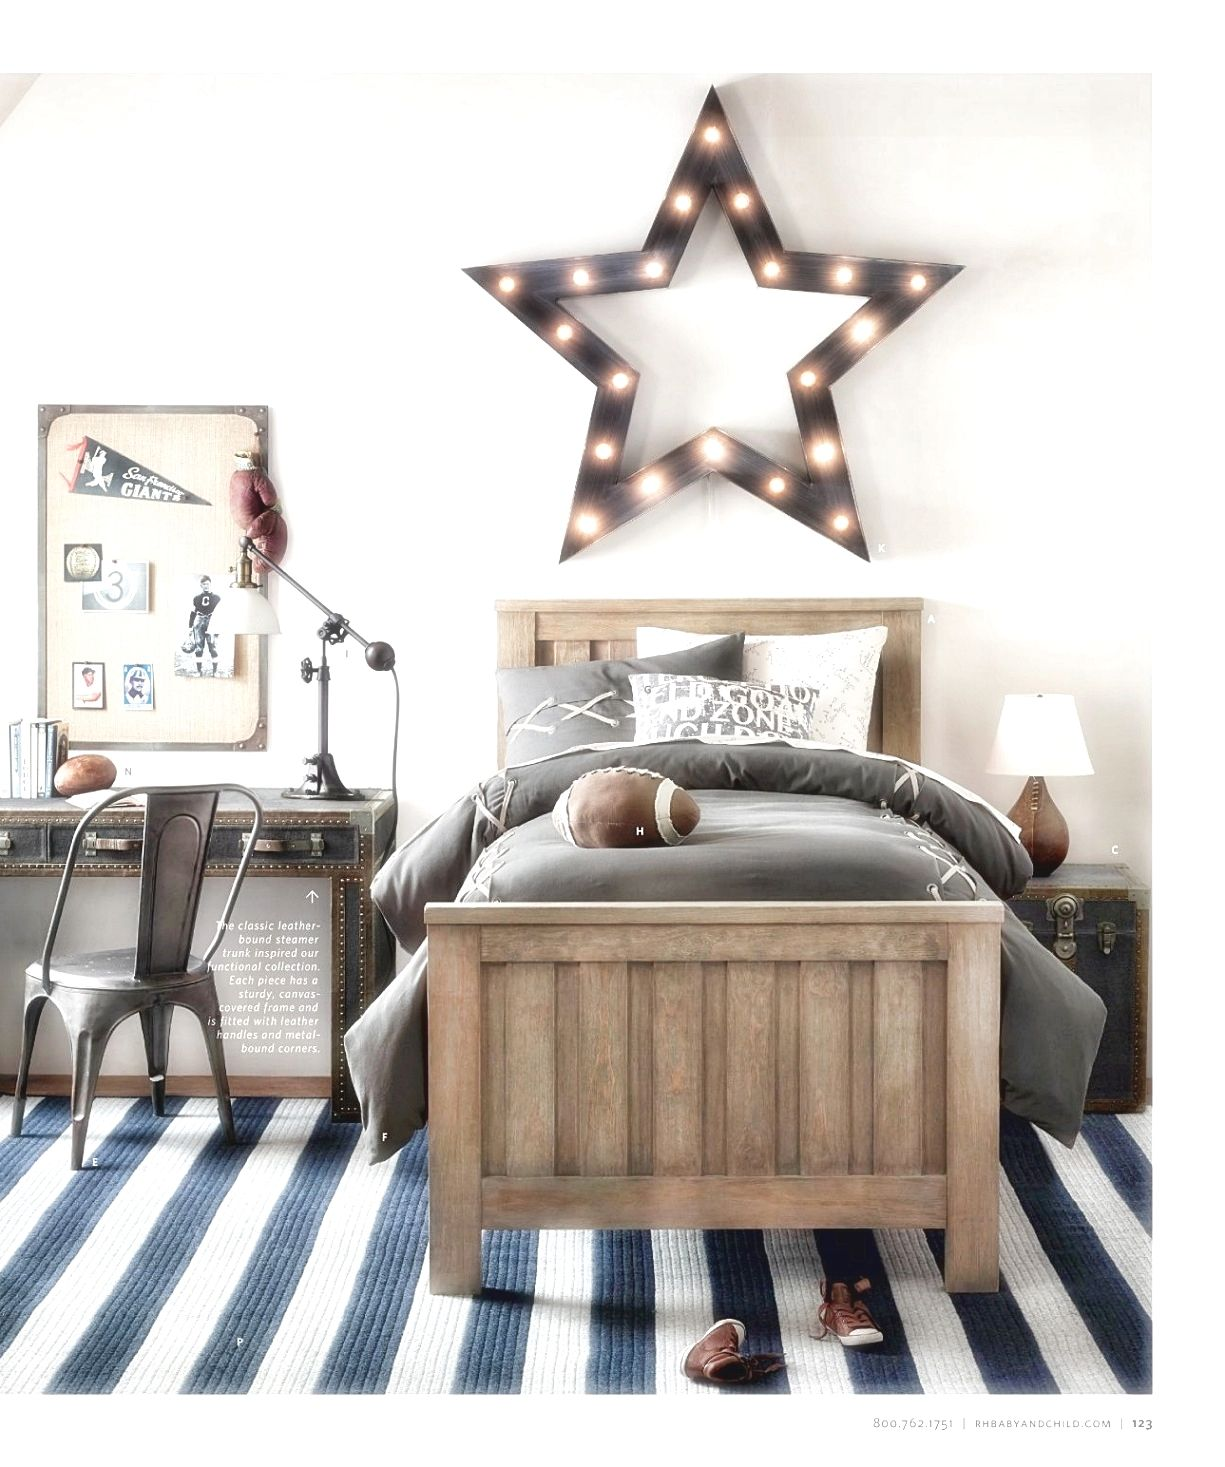 Boy Bedroom Design Tips This Is A Decorating Tip For People Of Any Age